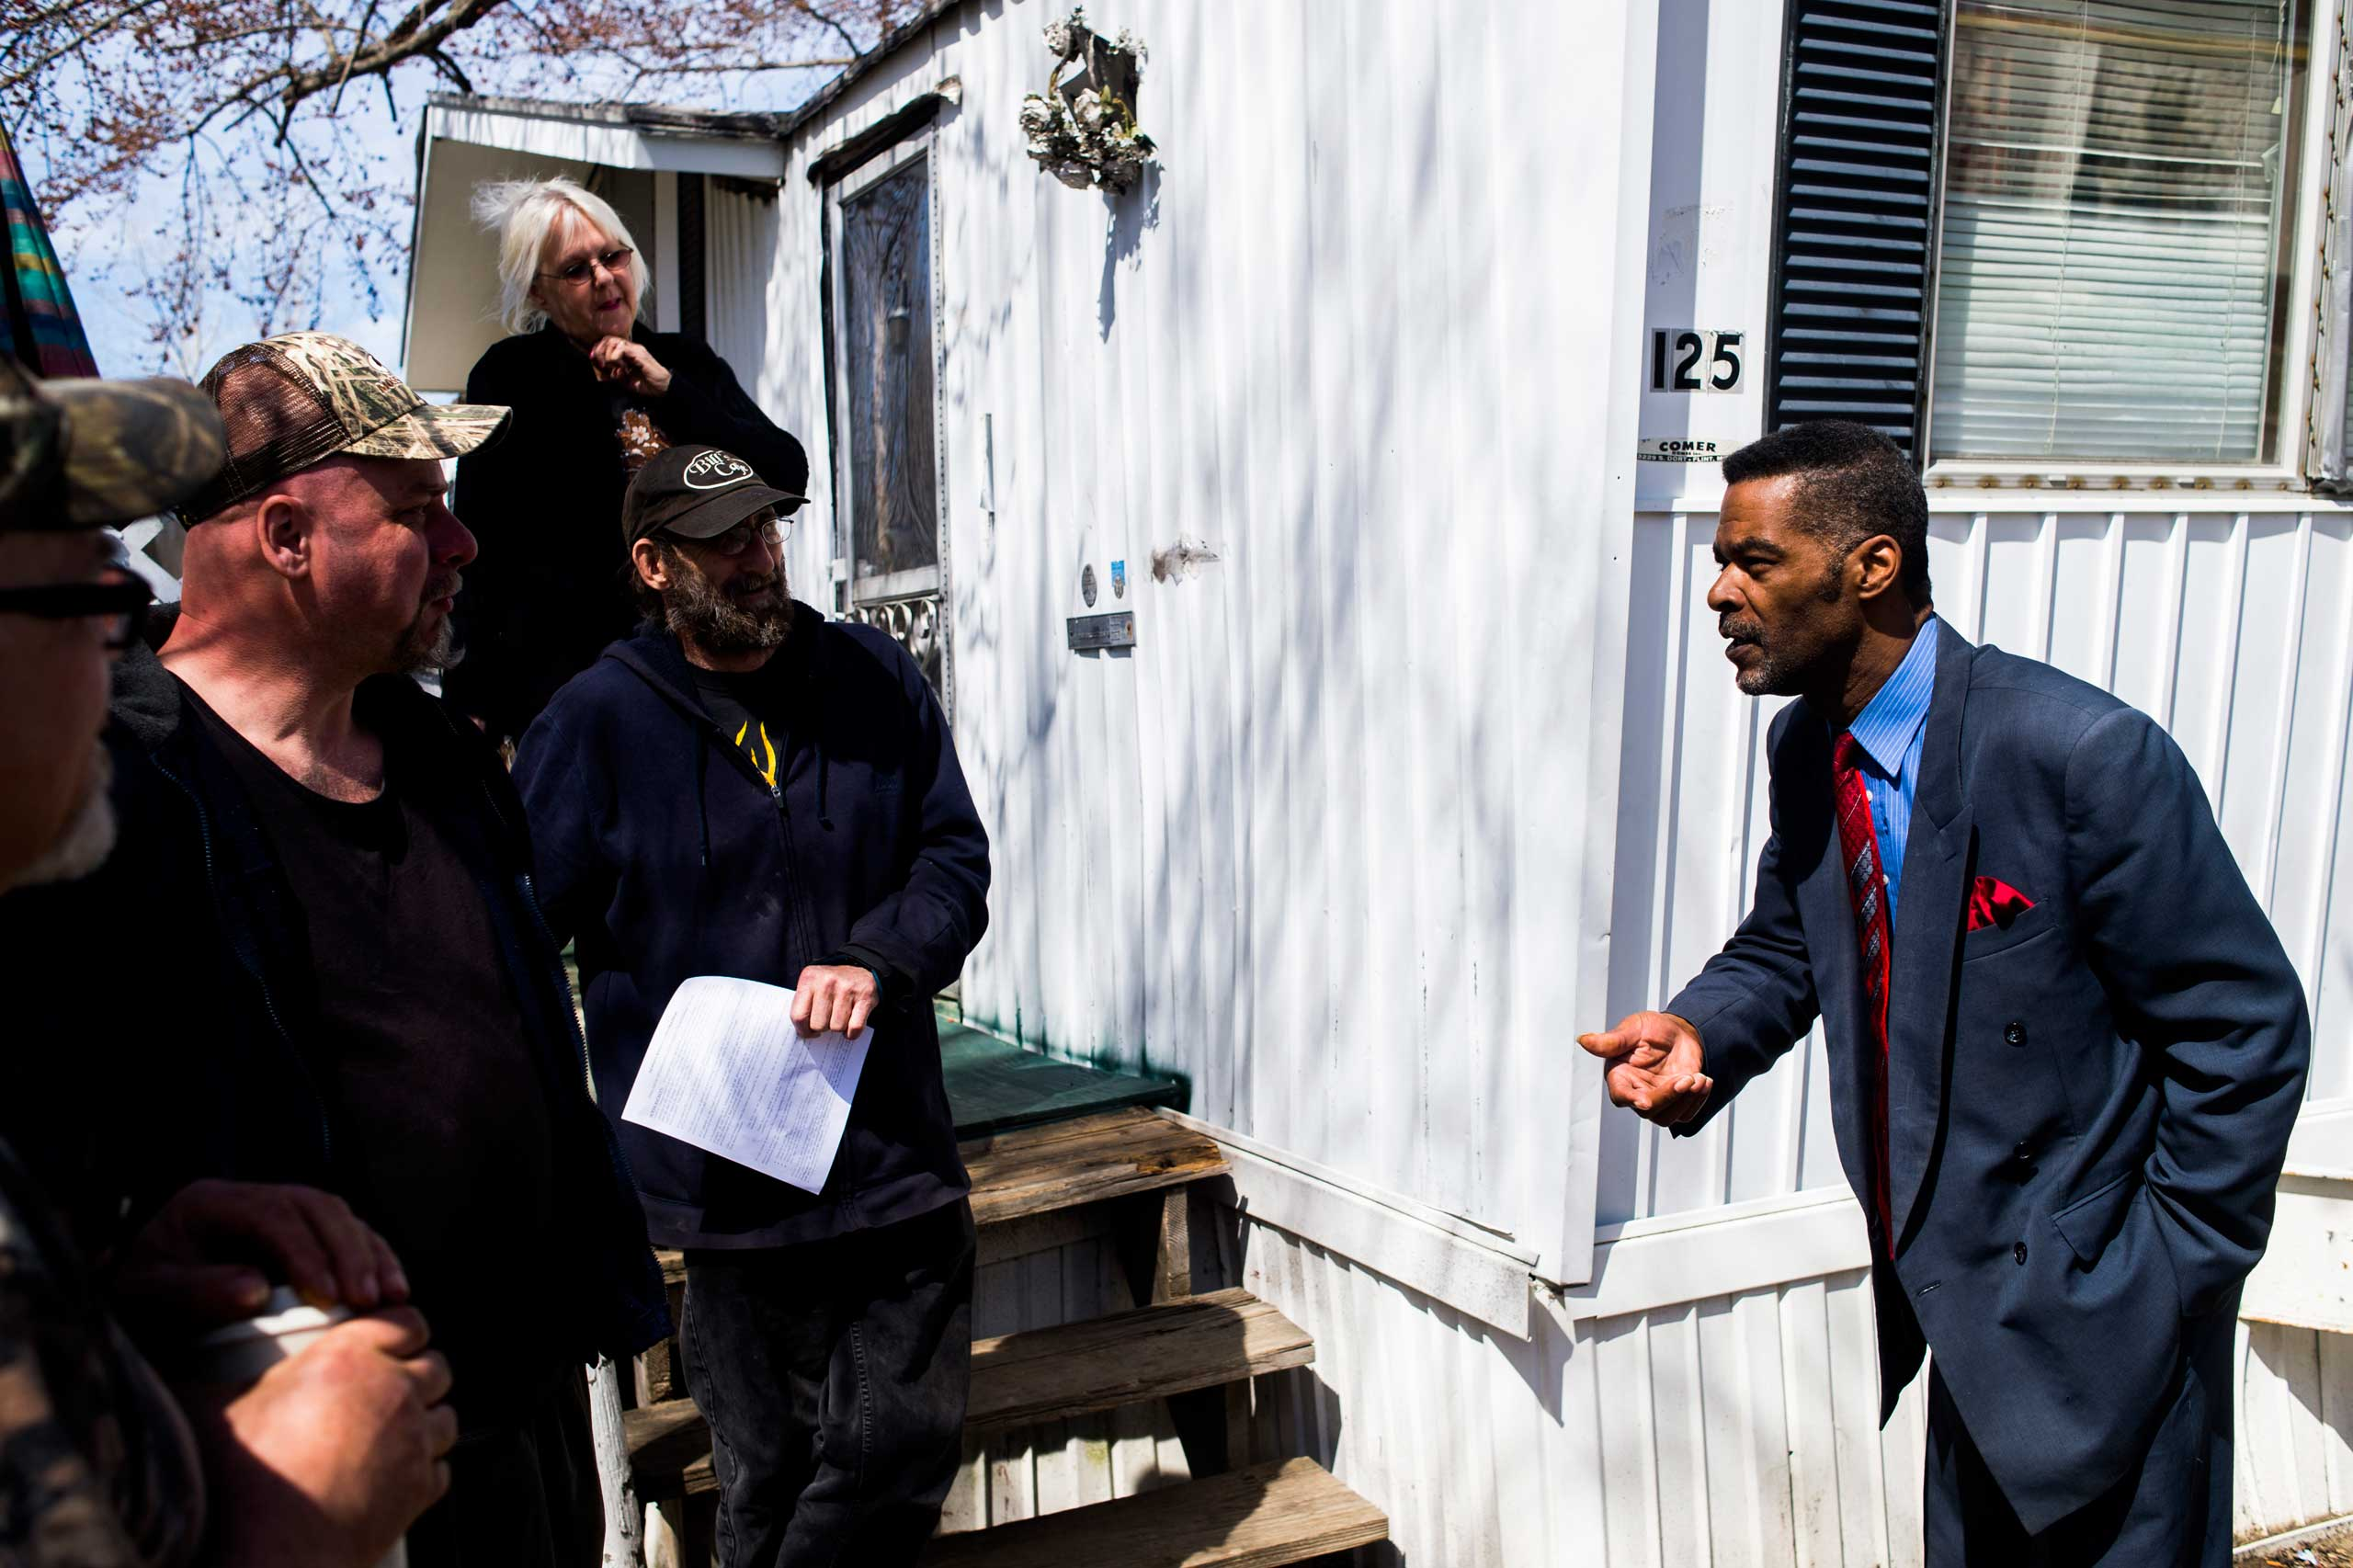 Flint City councilman Eric Mays speaks with concerned residents at Ambassador East mobile home park on April 15, 2015, in Flint, Mich. The city of Flint plans to install a $1.5 million granulated active-charcoal filter by mid-July in an effort to address concerns over its water quality.